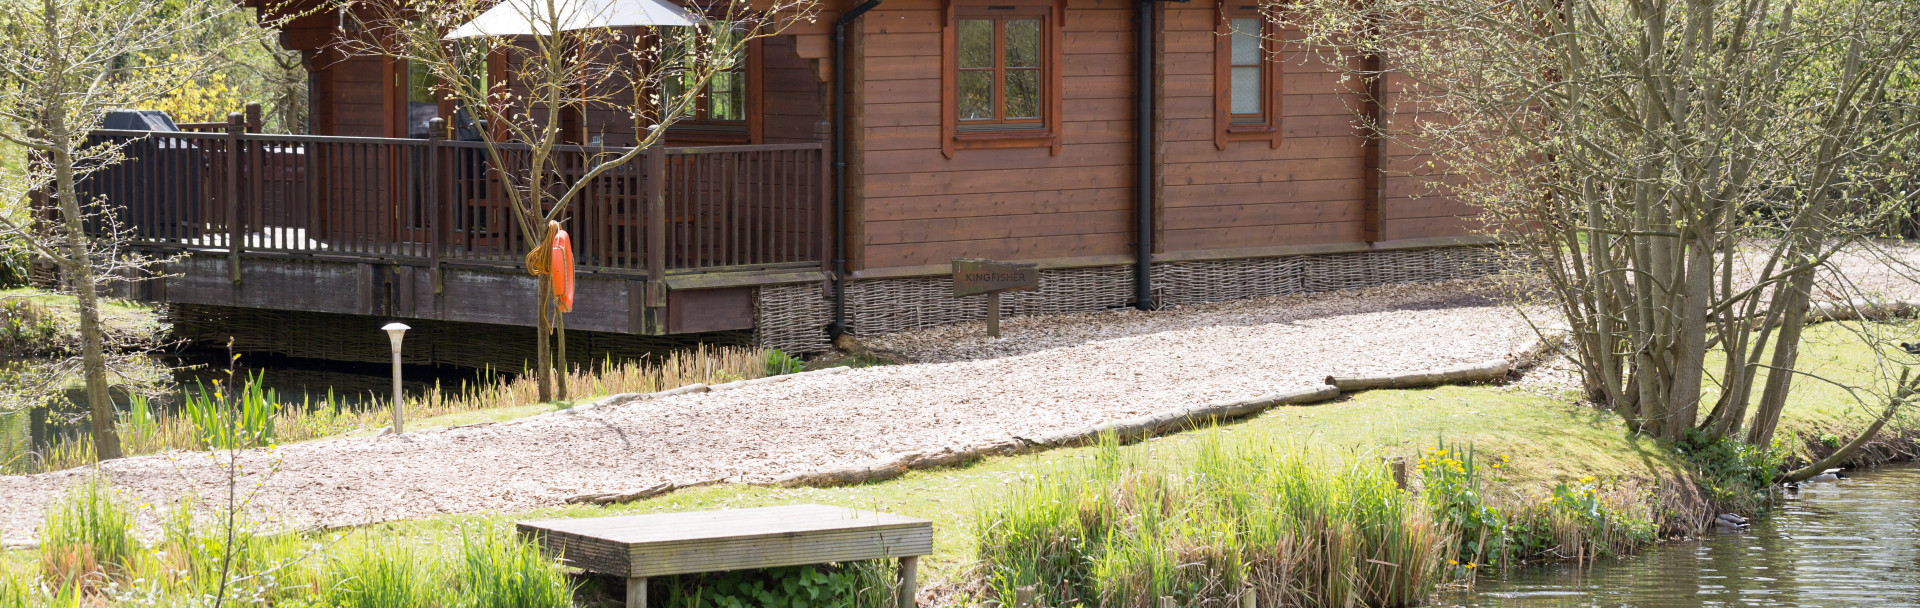 Special Offers In December At Badwell Ash Holiday Lodges